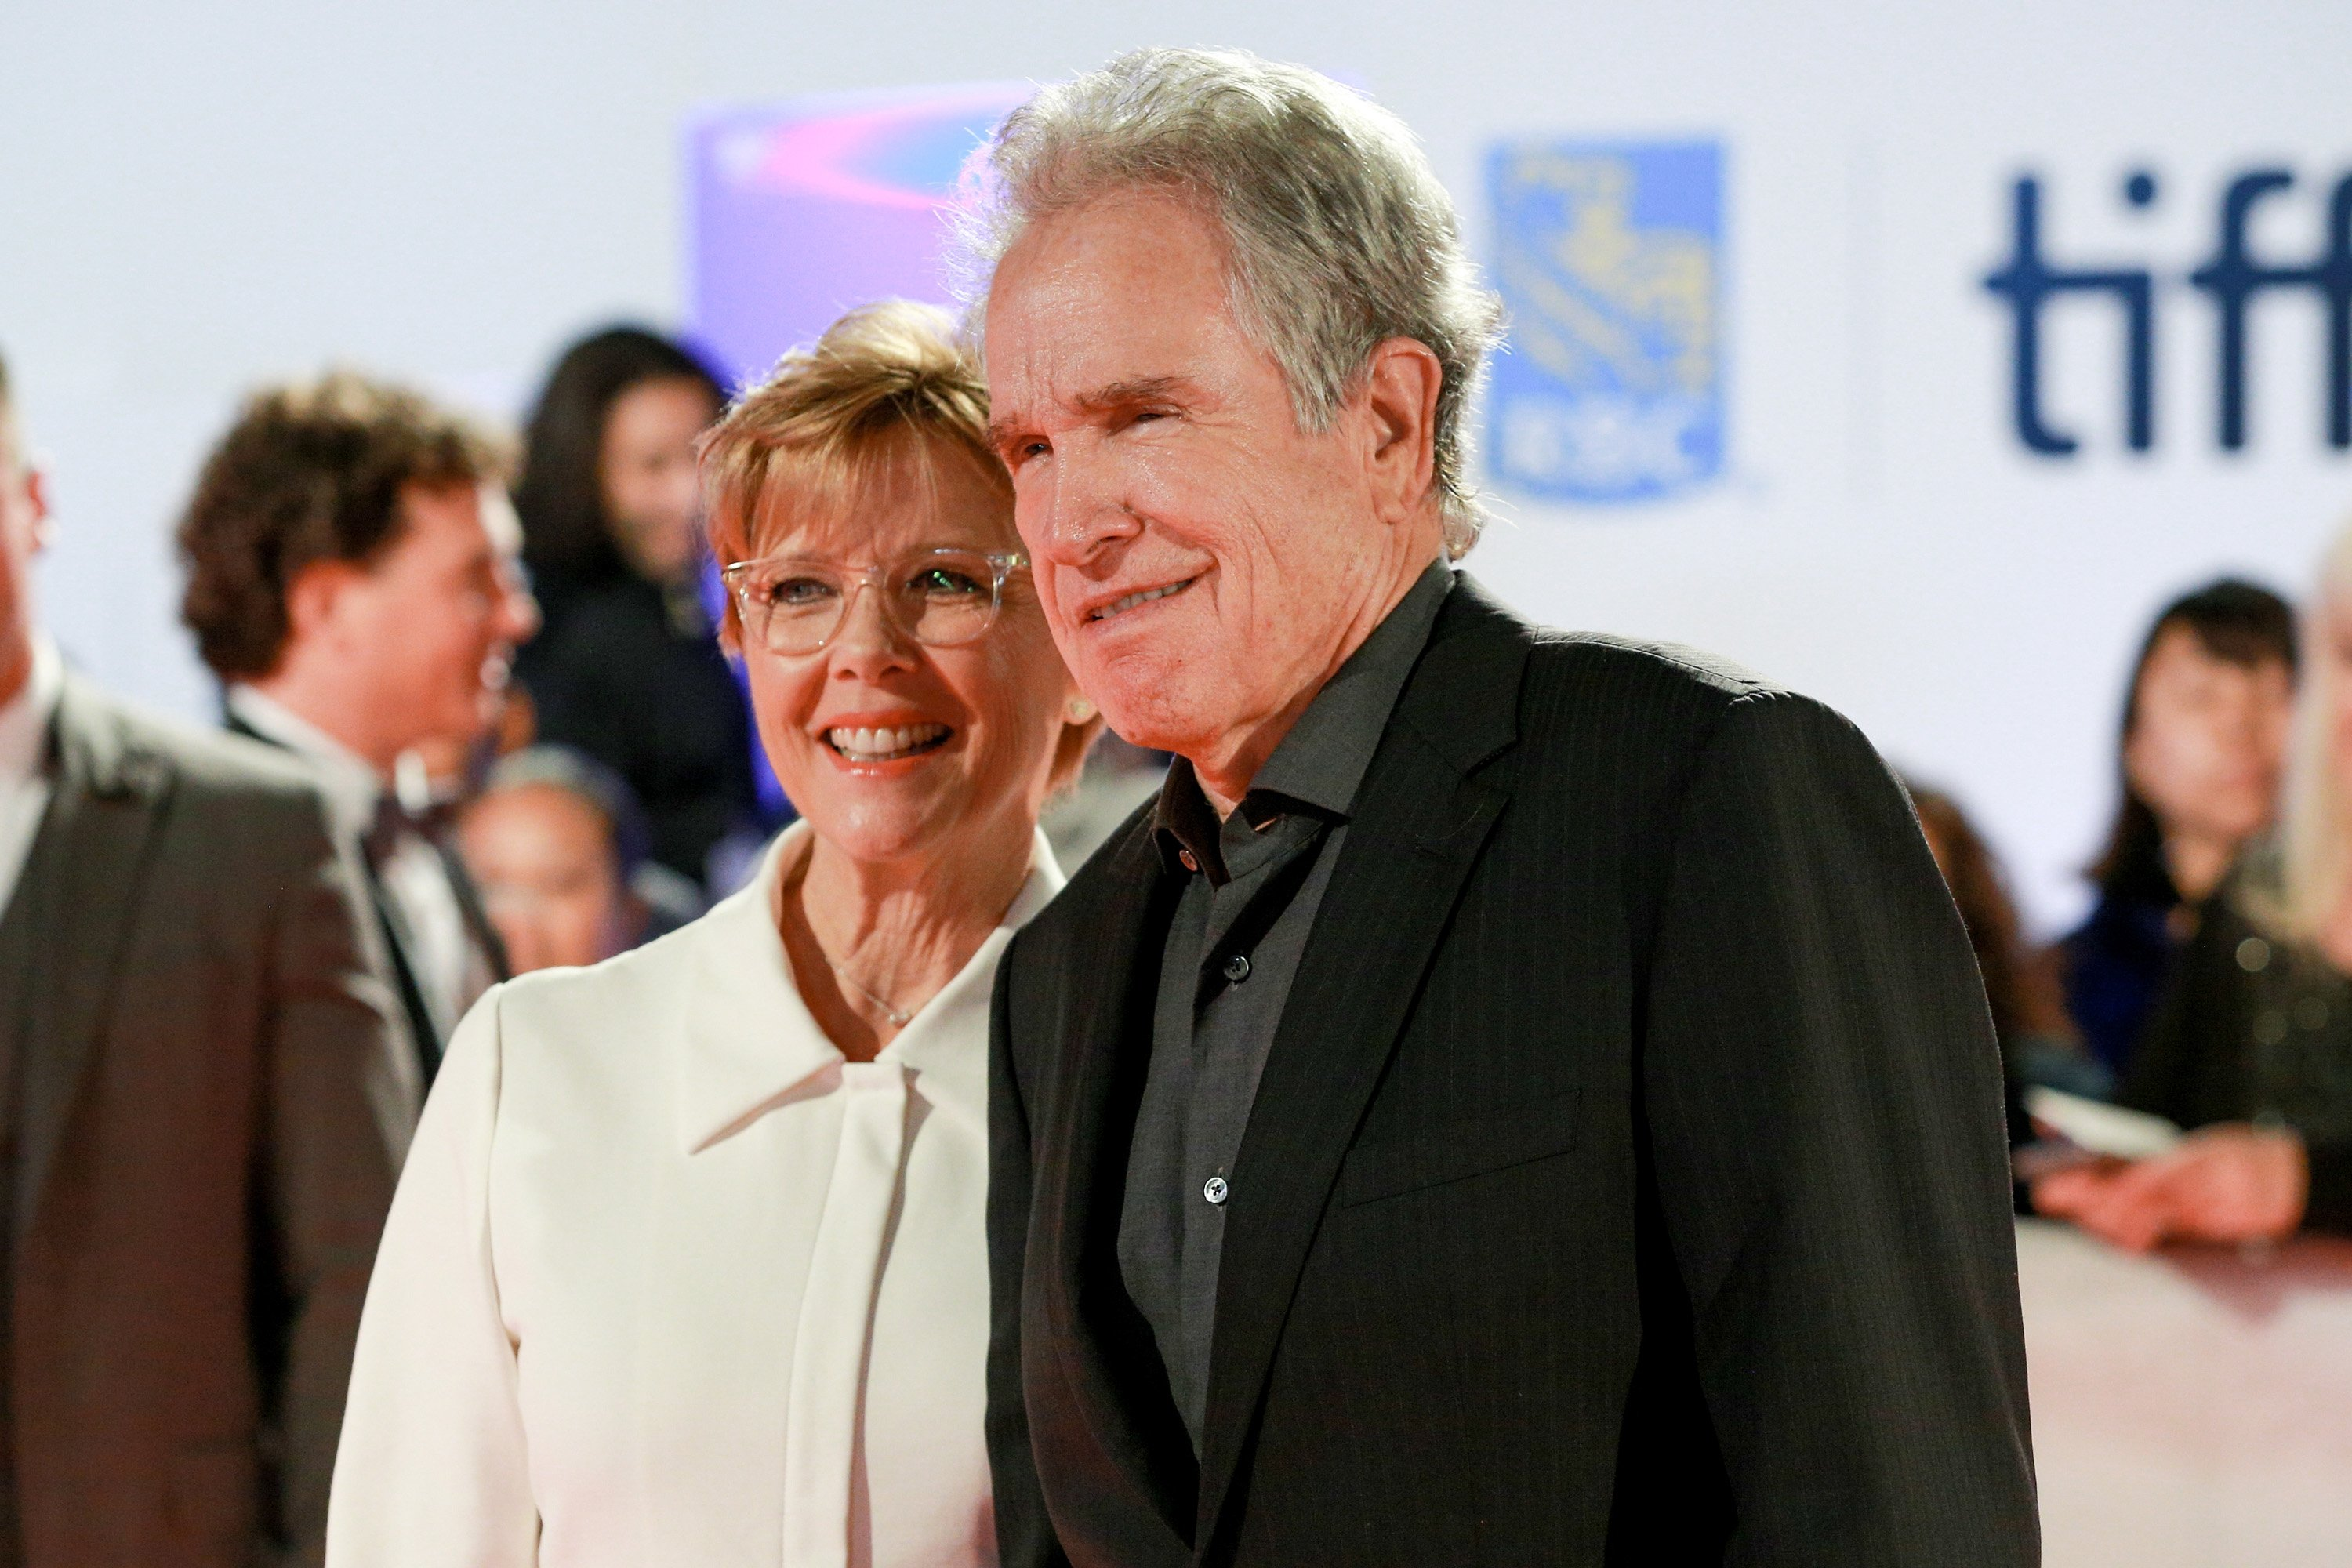 Annette Bening and Warren Beatty attend the 'Film Stars Don't Die in Liverpool' premiere on September 12, 2017 in Toronto, Canada | Photo: Getty Images